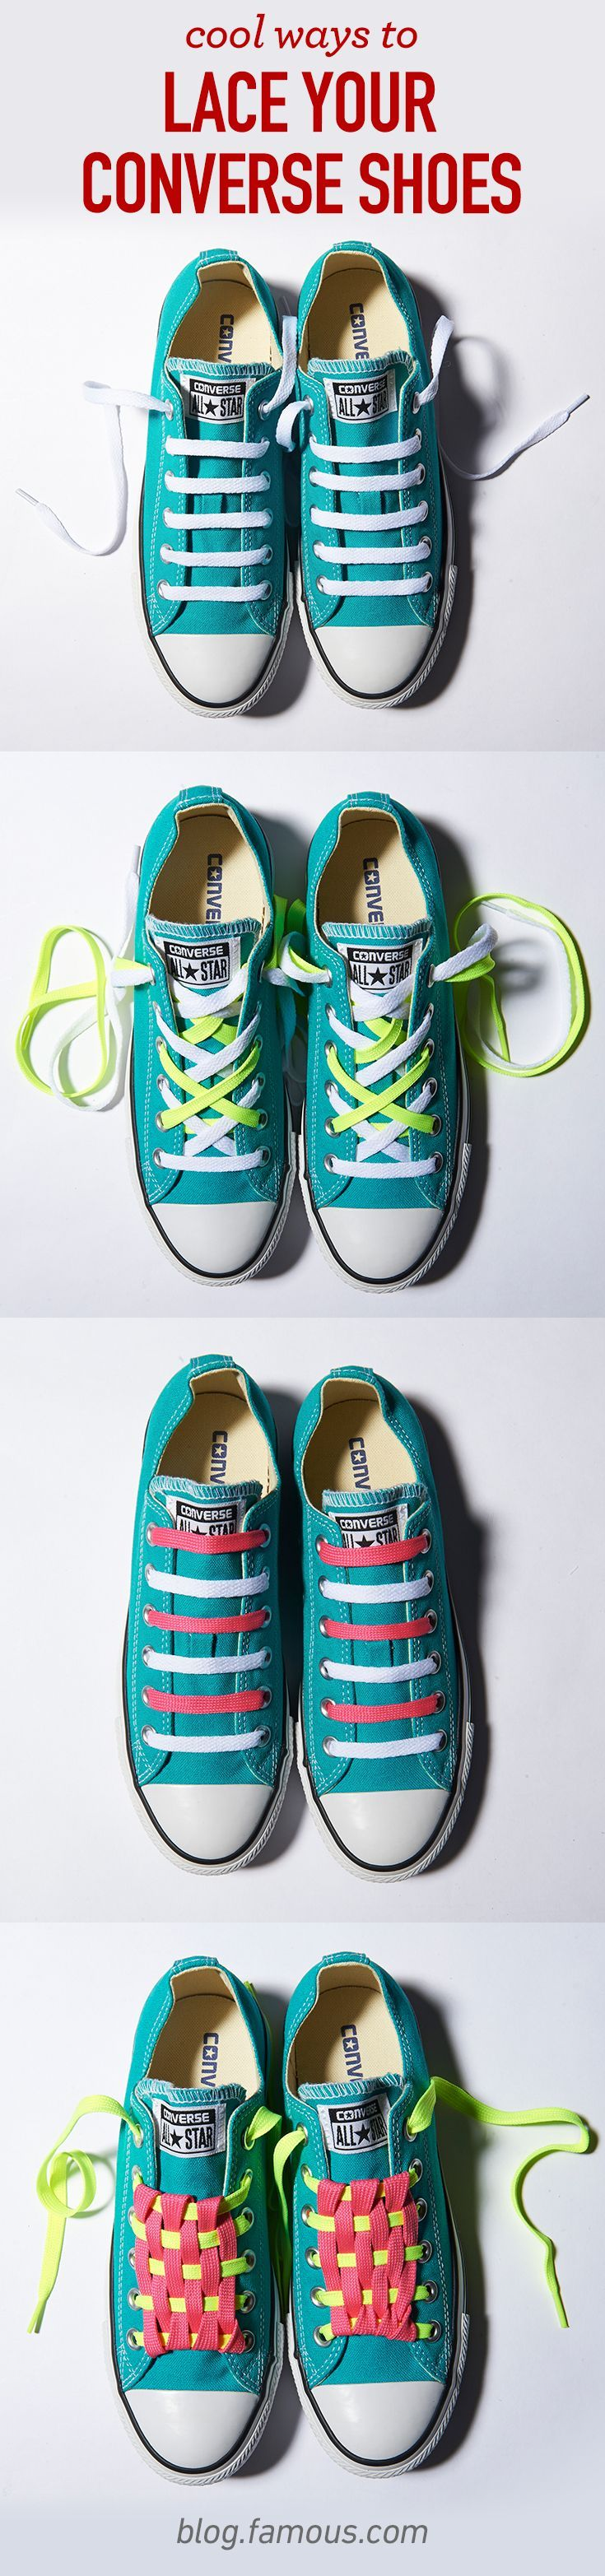 DIY laces are a great way to customize your Converse shoes! Check out the step-by-step instructions on our blog.